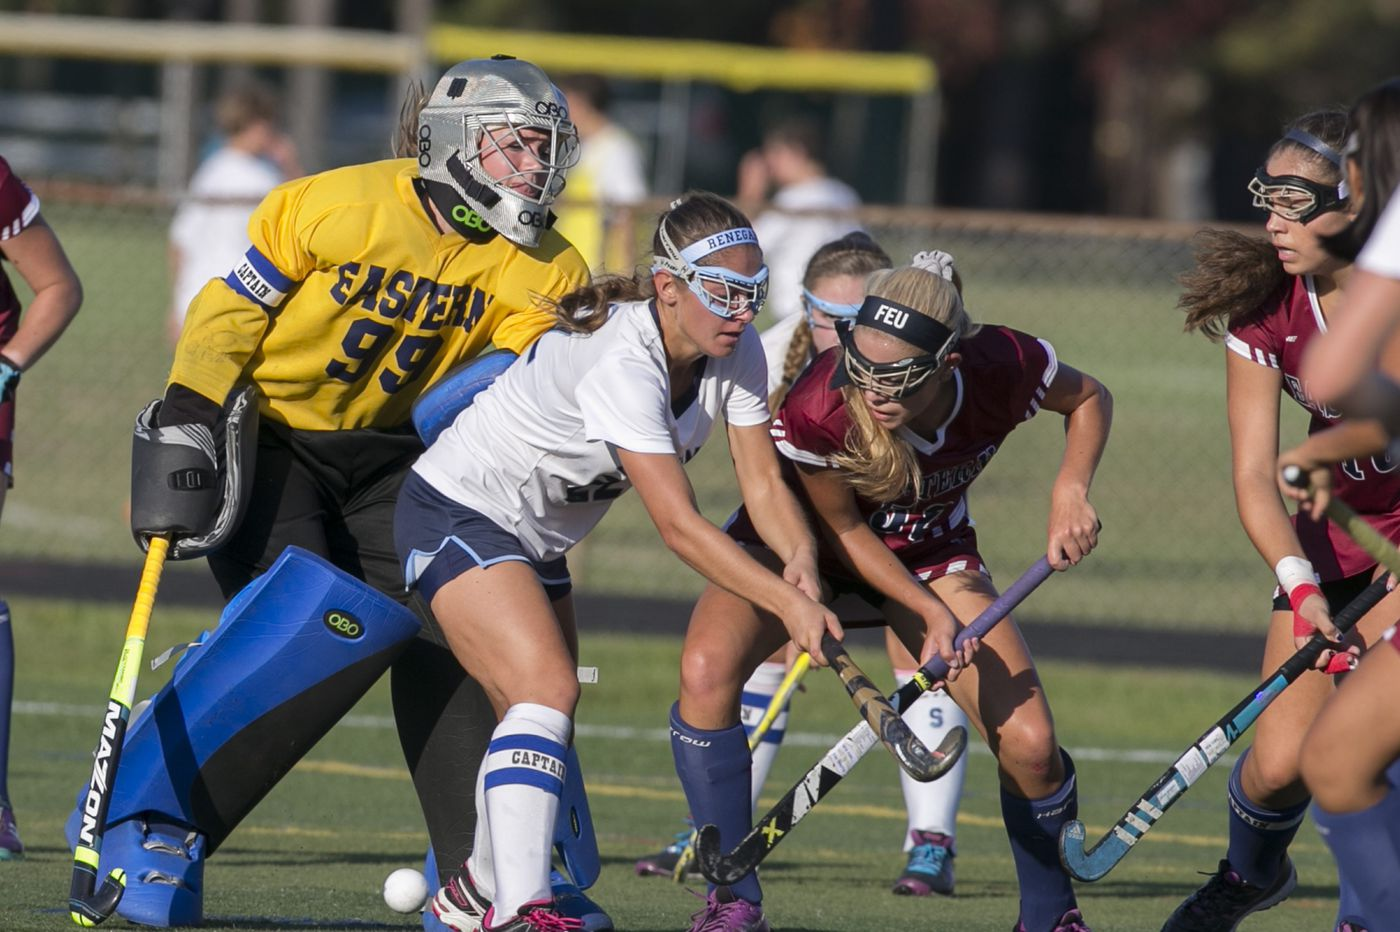 Friday's South Jersey roundup: Woodstown, Overbrook, Schalick and Middle Township advance to Group 1 semis in field hockey